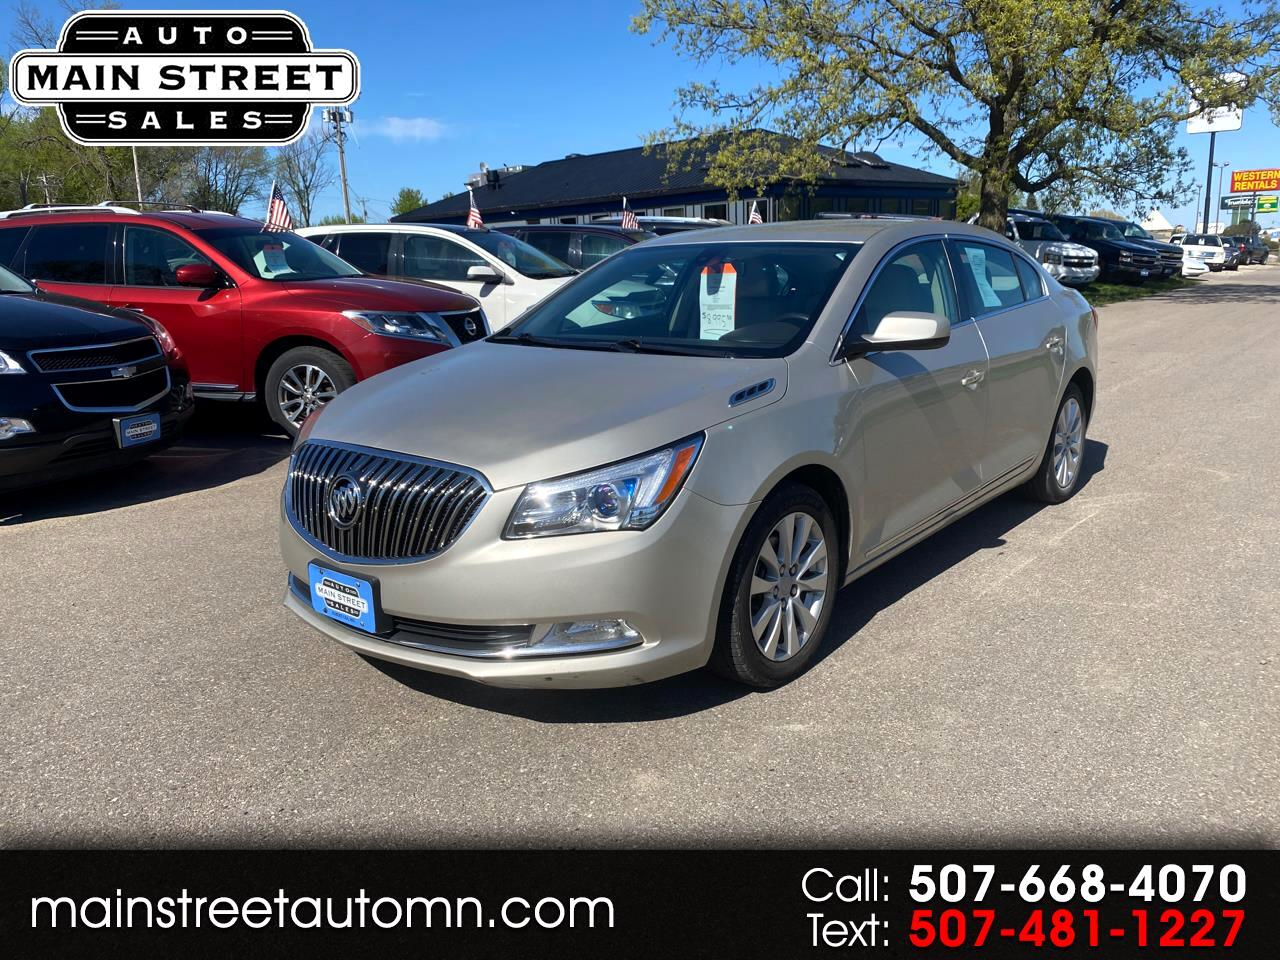 Buick LaCrosse 4dr Sdn Base FWD 2015